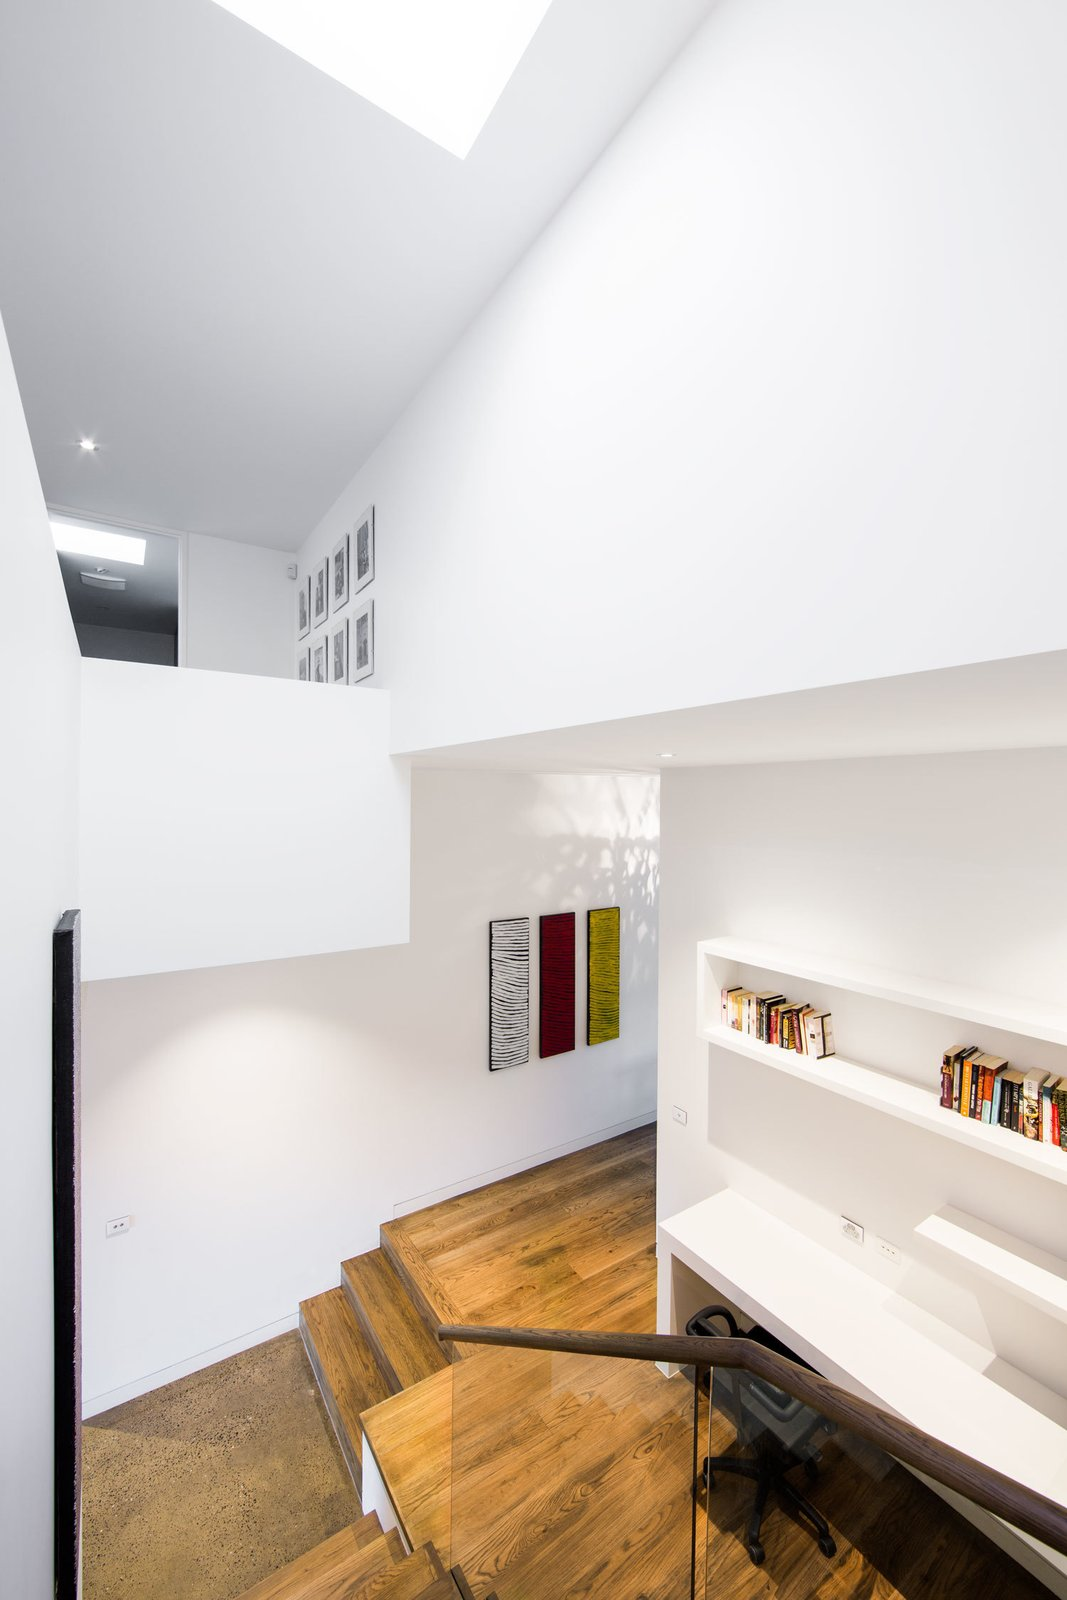 Wood Tread, Wood Railing, Windows, and Skylight Window Type This double-height stairwell, just adjacent the kitchen, marks the transition from the historic building to the new renovation. A skylight pulls sunlight from above into the home office below.  190+ Best Modern Staircase Ideas from A Breezy Modern Addition Opens Up a Historic Melbourne Home